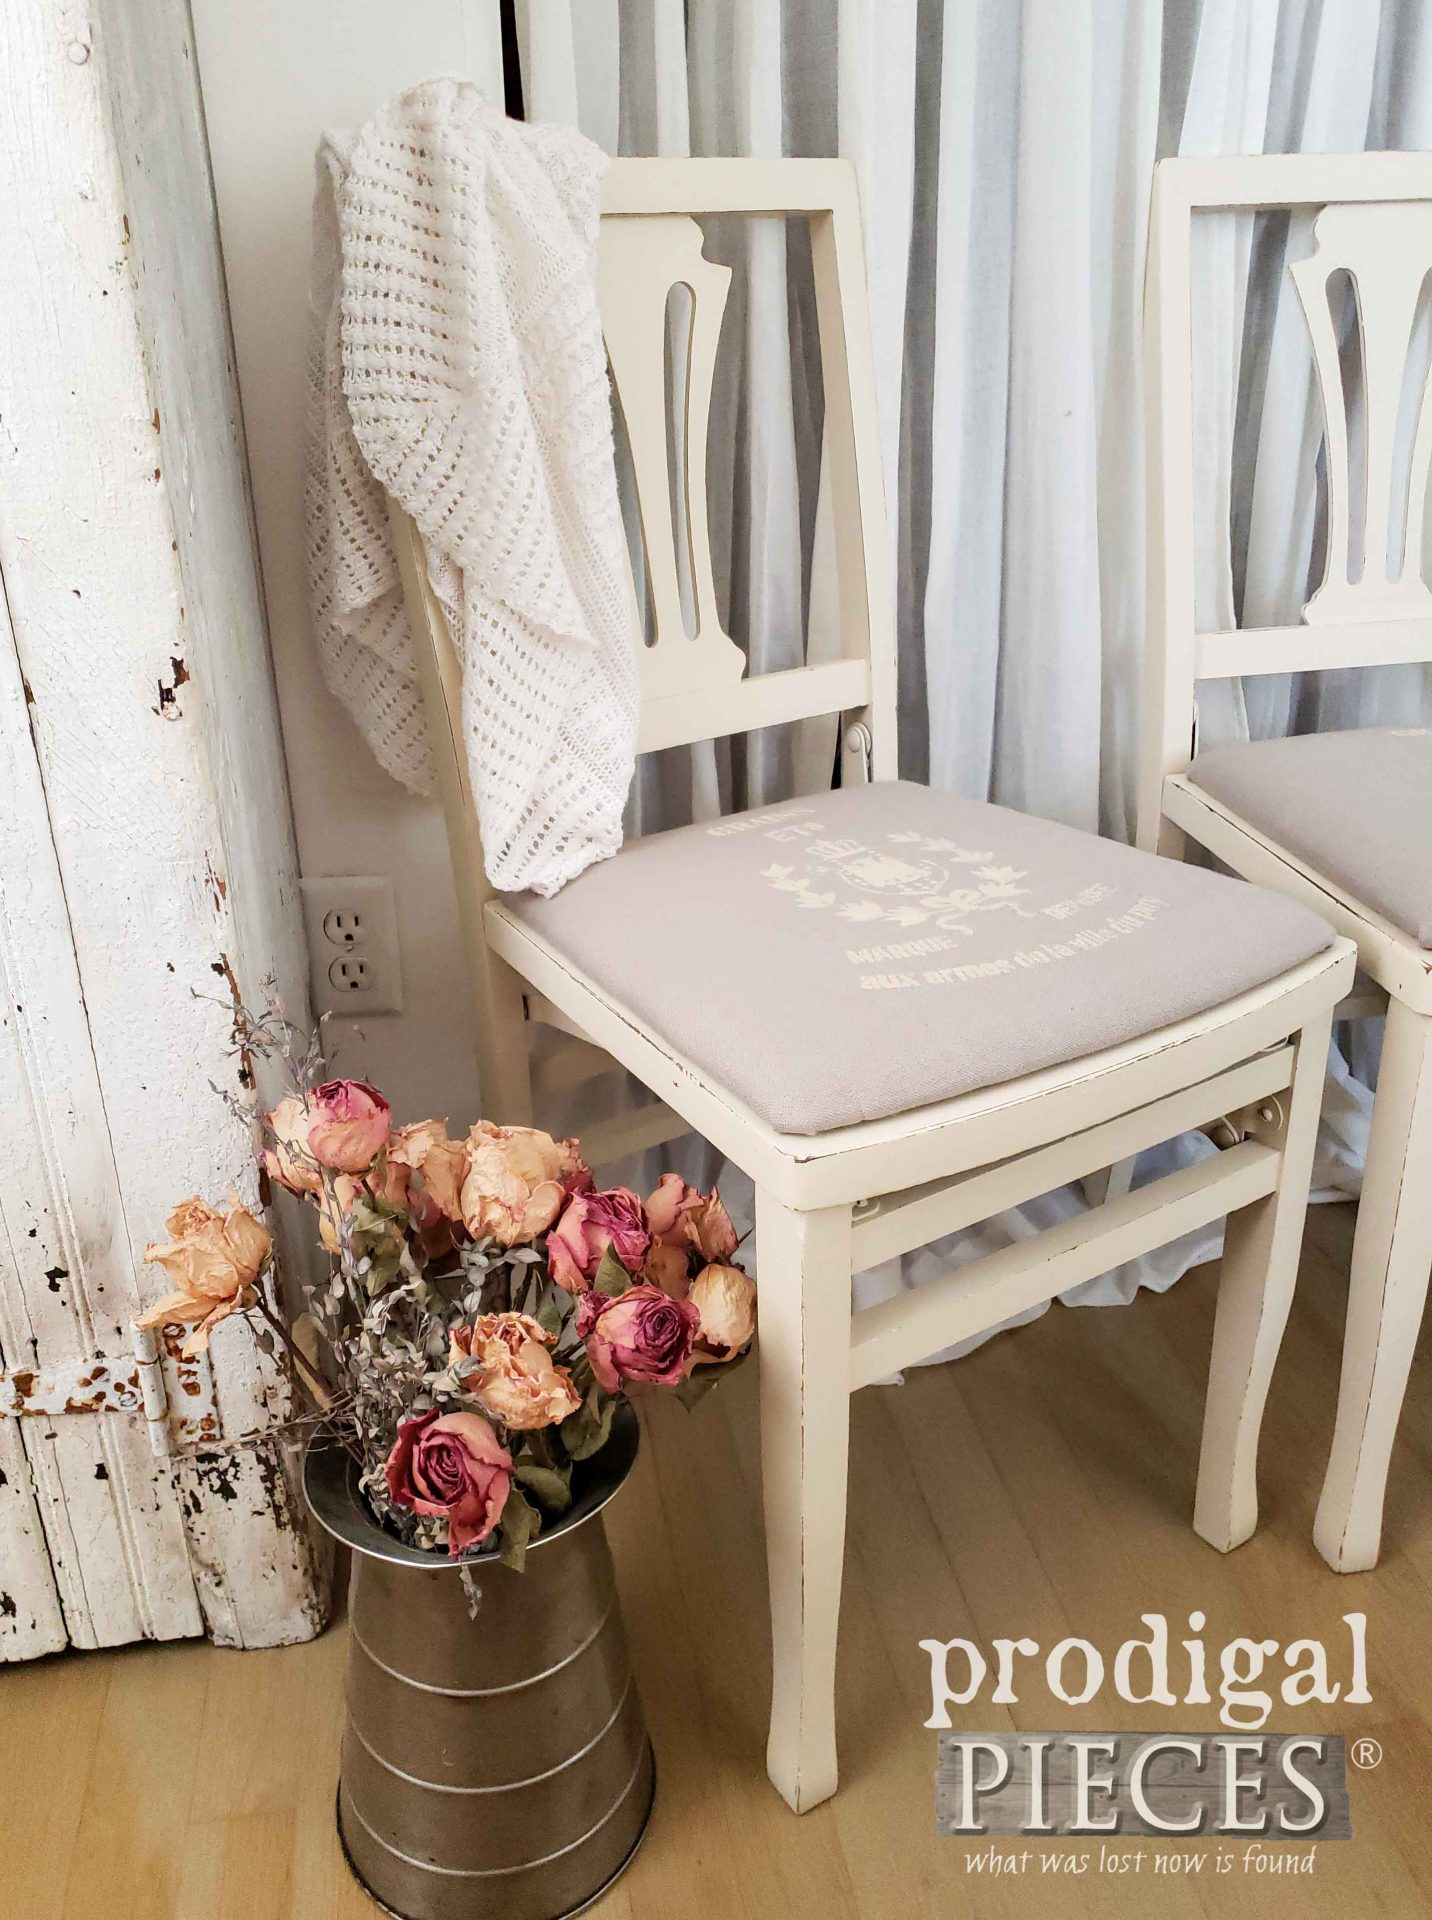 Creamy Antique White Upholstered Chairs with Grain Sack Stencil by Larissa of Prodigal Pieces | prodigalpieces.com #prodigalpieces #diy #home #homedecor #furniture #farmhouse